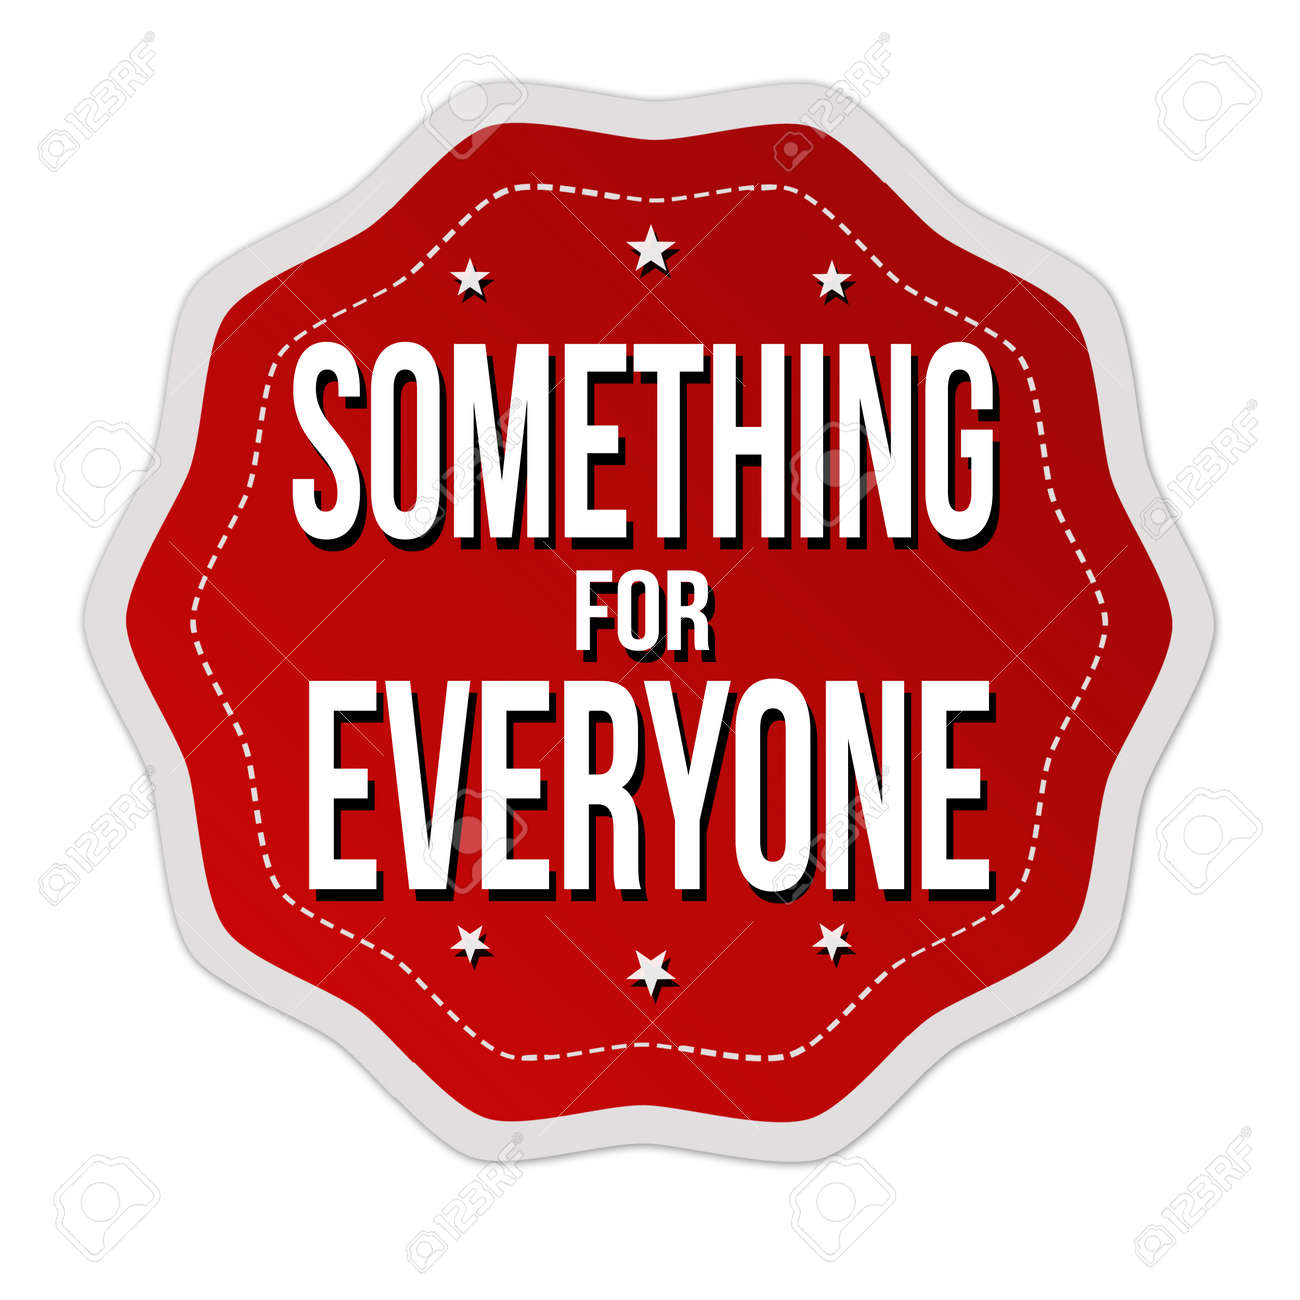 Something For Everyone Label Or Sticker On White Background